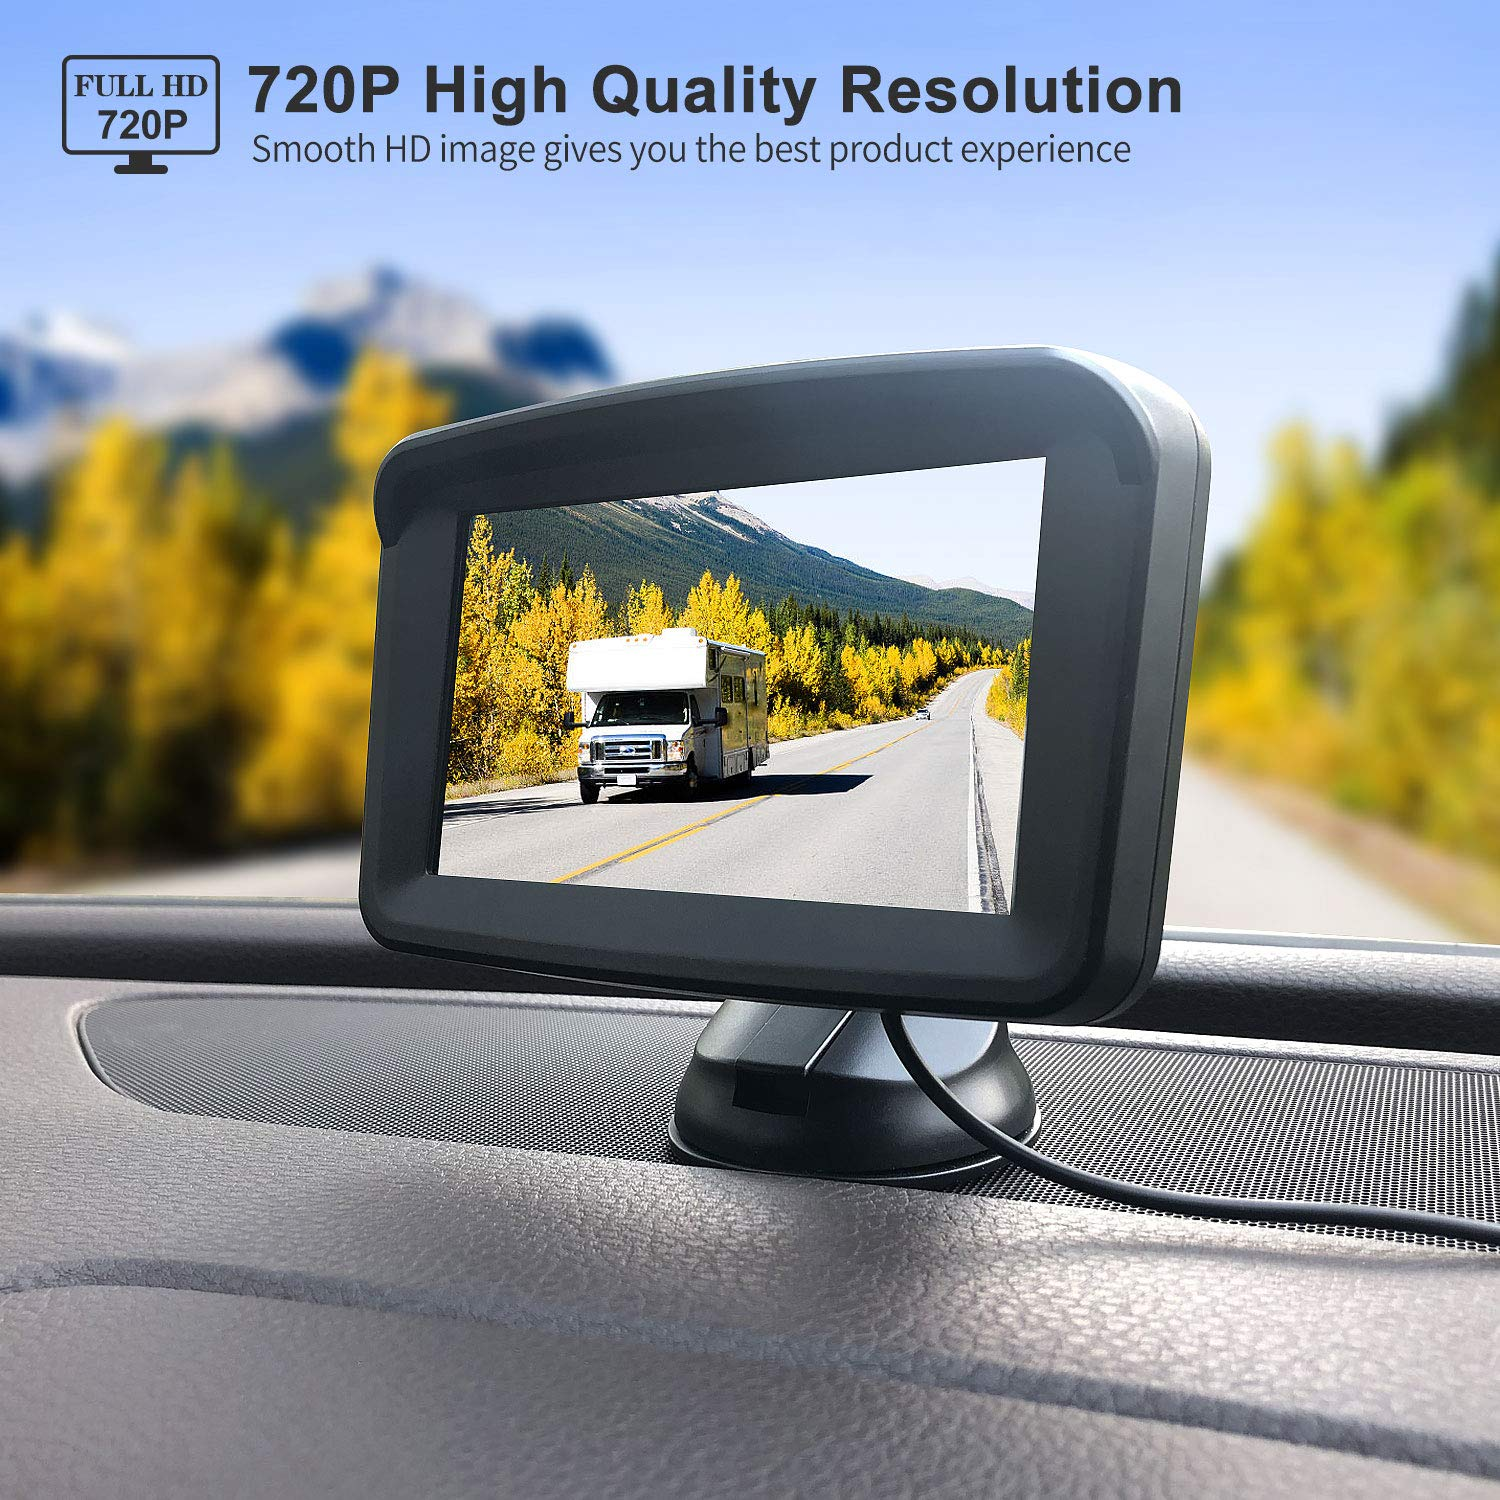 Backup Camera with Monitor License Plate Mounted Digital Reversing observation Camera Night Vision Waterproof Rear View for 5'' LCD Monitor be Used for Safety Driving of Vans,Trucks,Camping Cars,RVs,et by Xroose (Image #3)